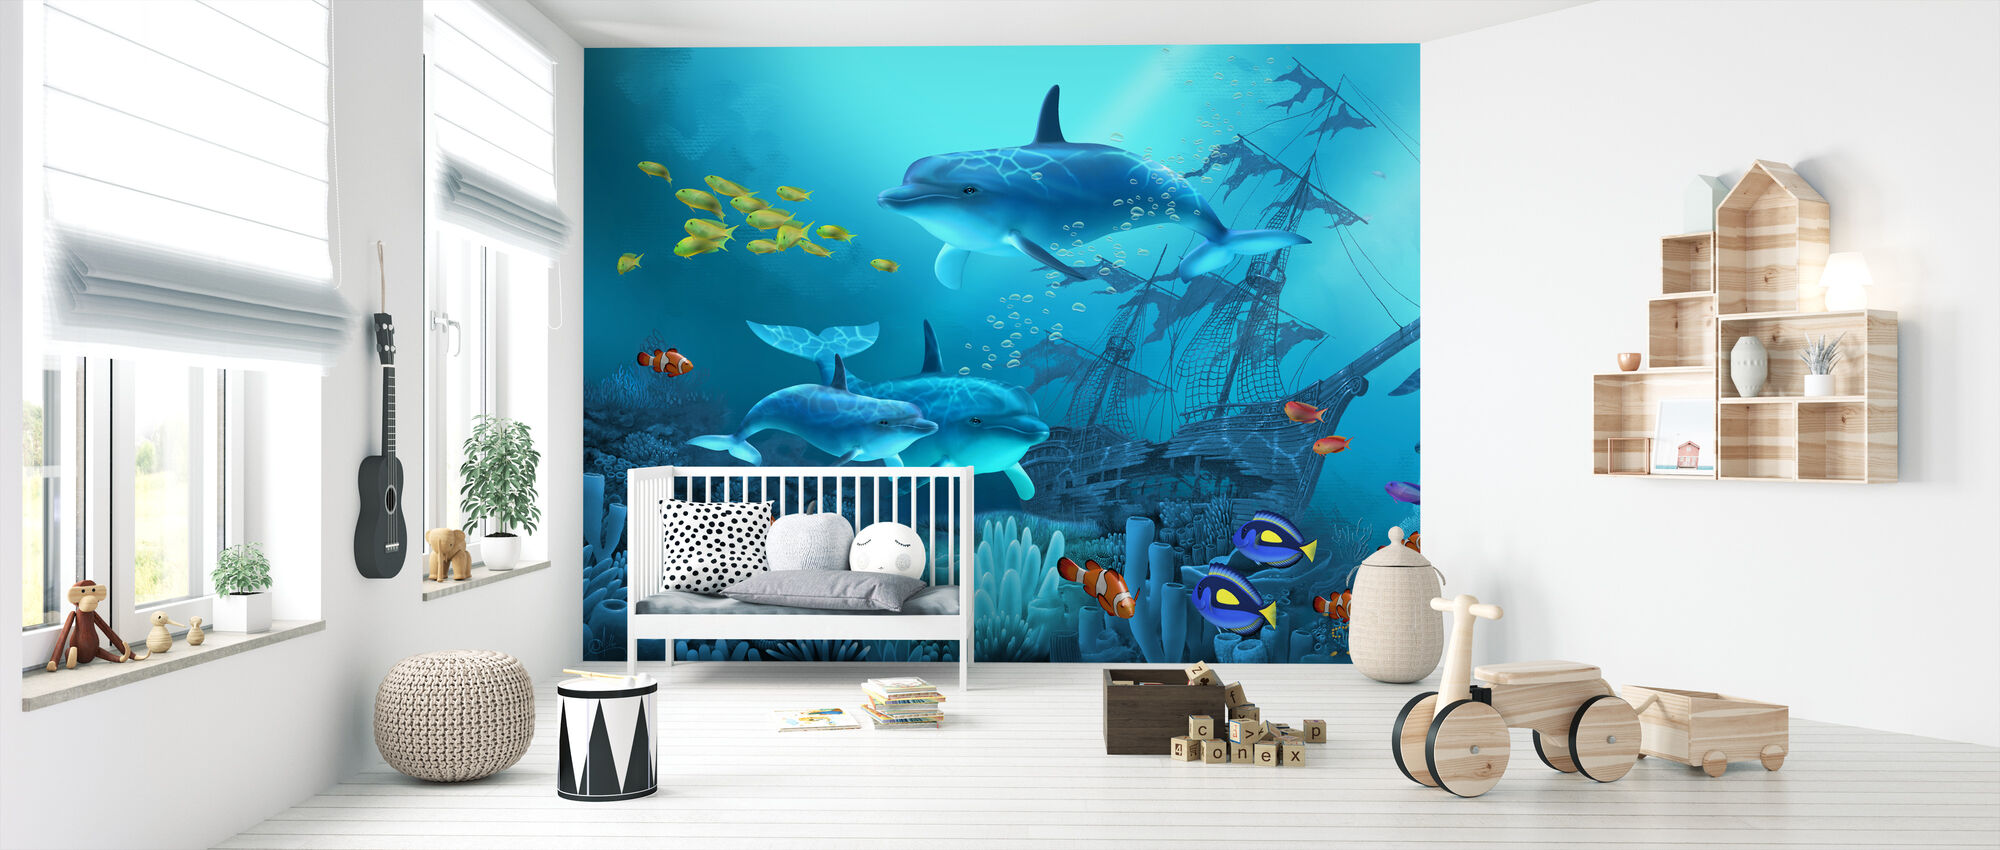 Lost Treasures - Wallpaper - Nursery